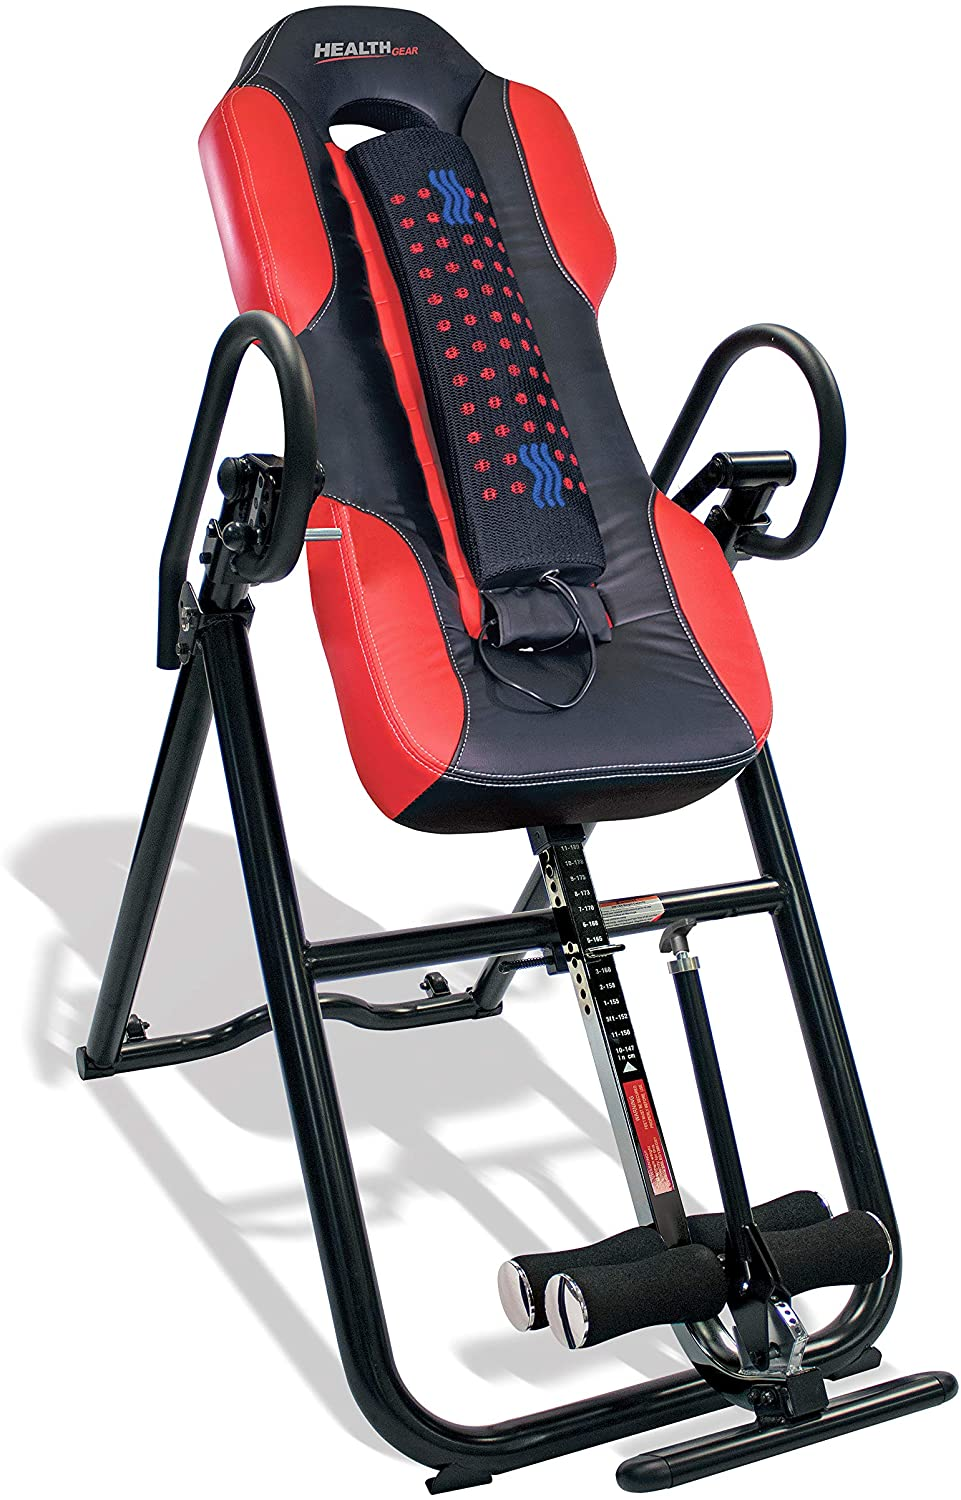 Health Gear ITM5500 Advanced Technology Heavy Duty Inversion Table